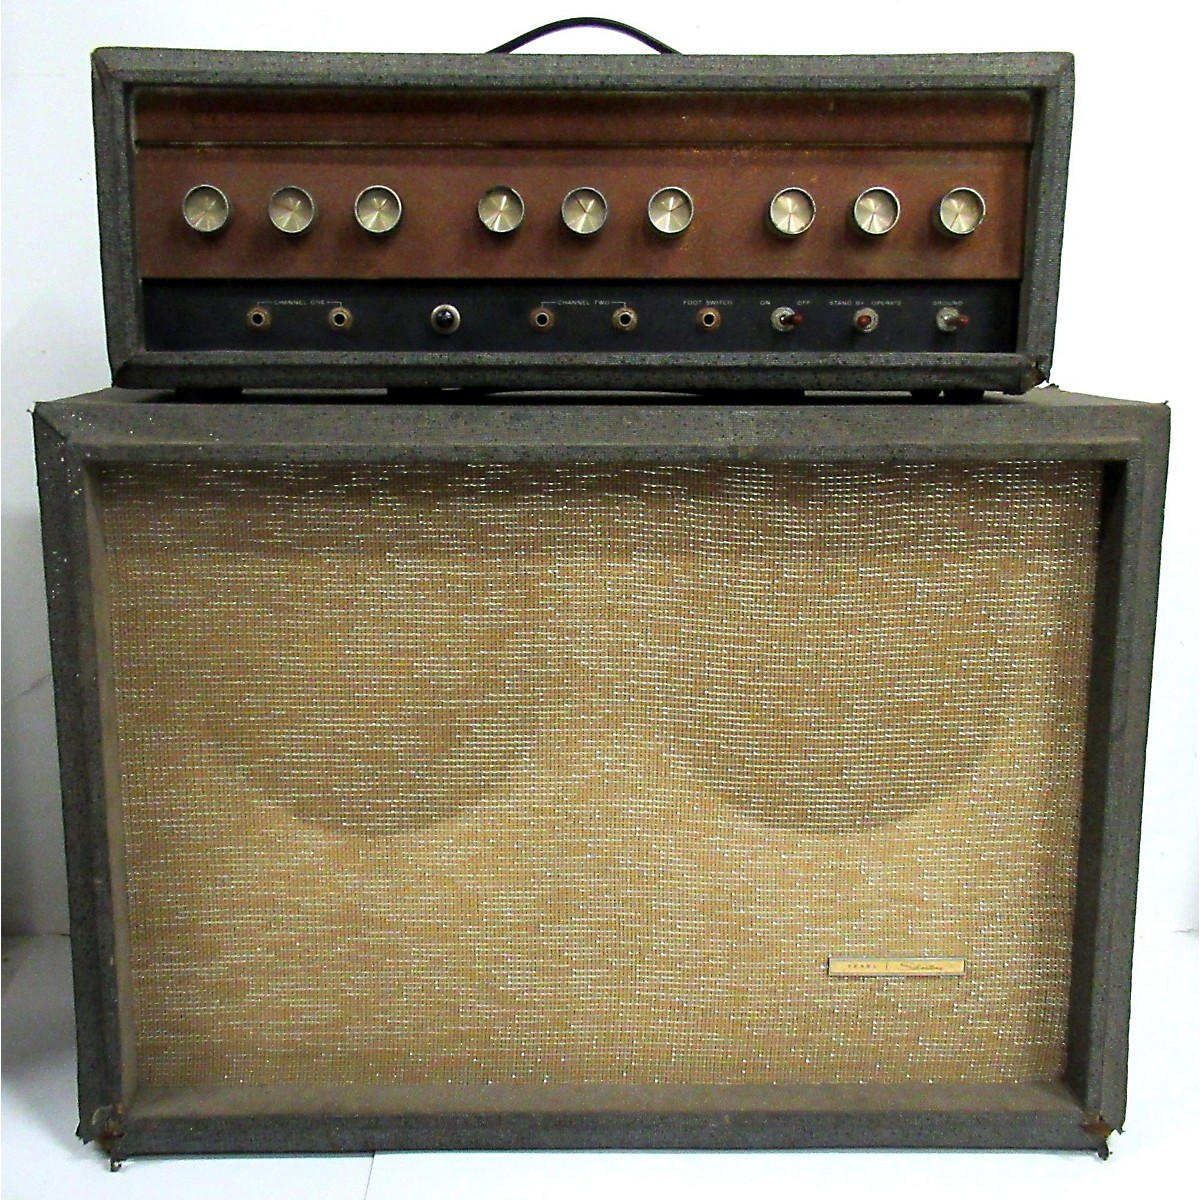 Silvertone 1960s Model 1484 Head And Cabinet Tube Guitar Combo Amp